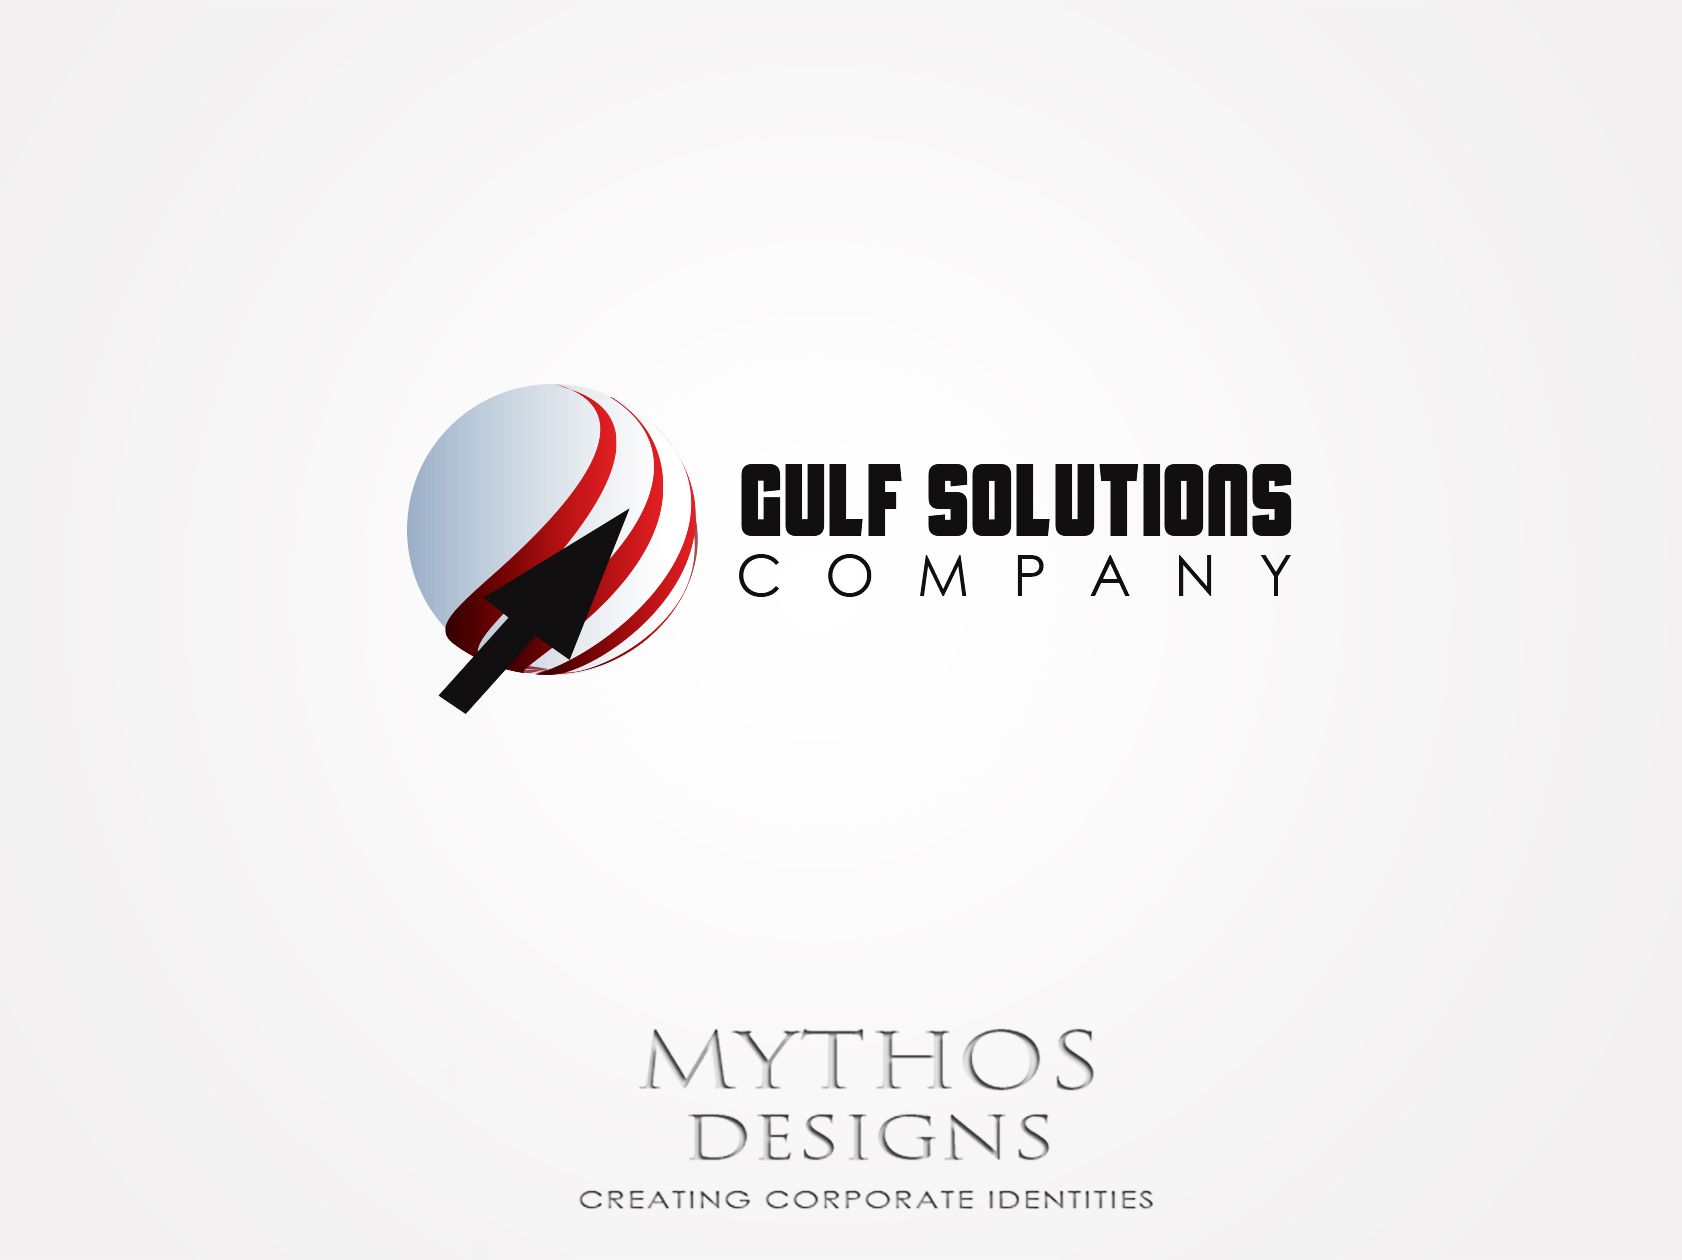 Logo Design by Mythos Designs - Entry No. 22 in the Logo Design Contest New Logo Design for Gulf solutions company.